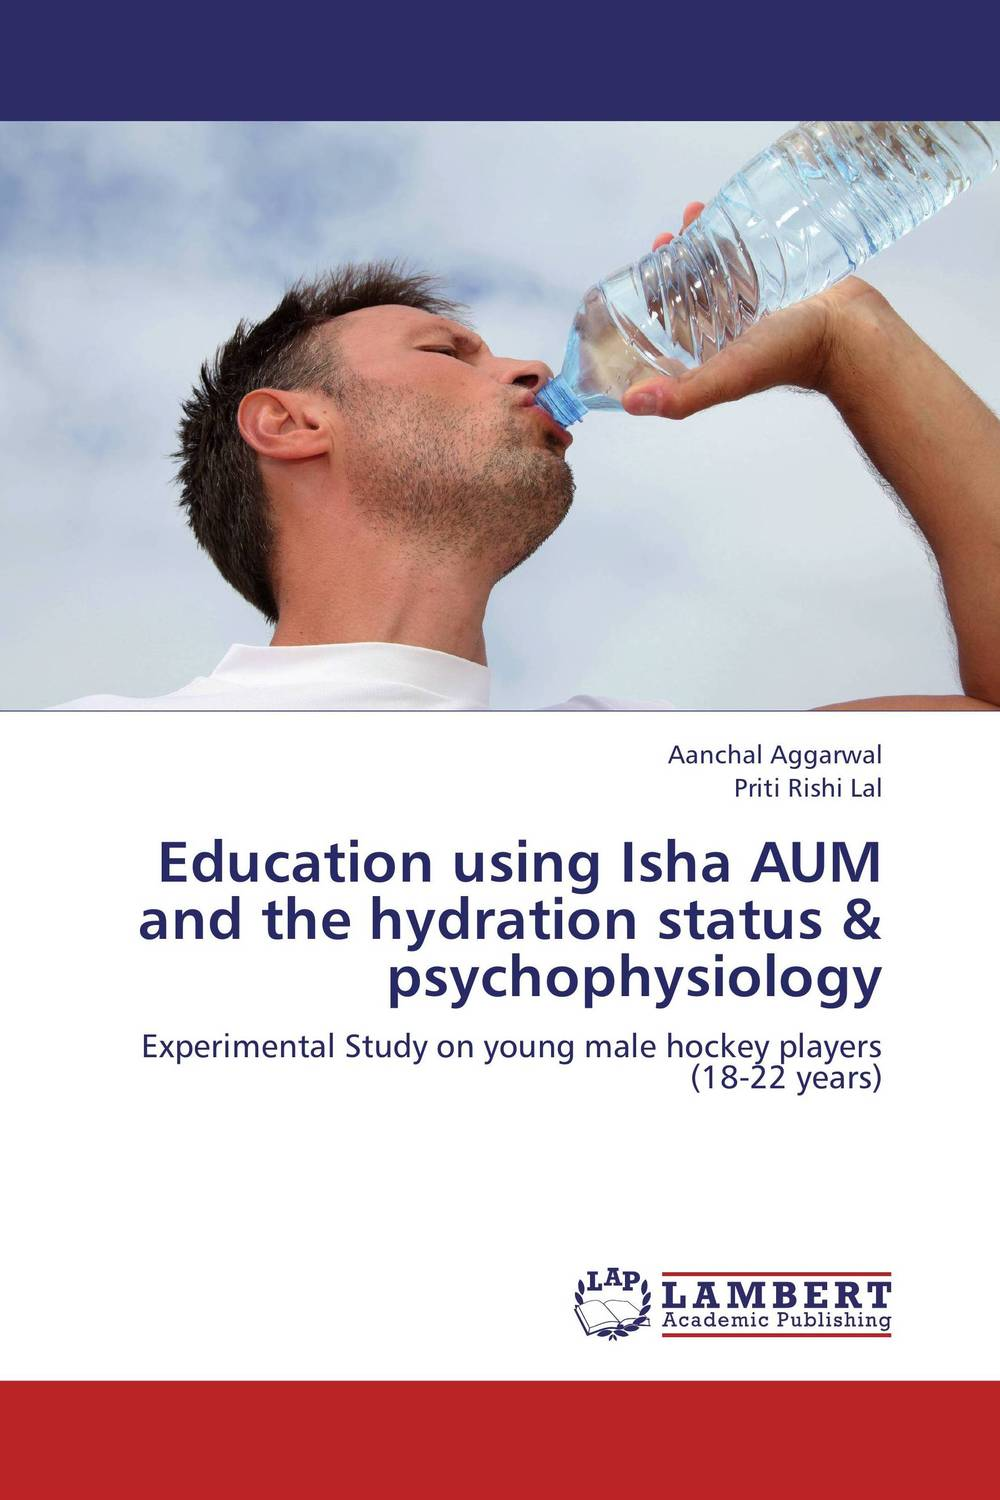 Education using Isha AUM and the hydration status & psychophysiology reena garbyal alka goel and isha tyagi traditional costumes of rung tribe bhotiya in uttarakhand india